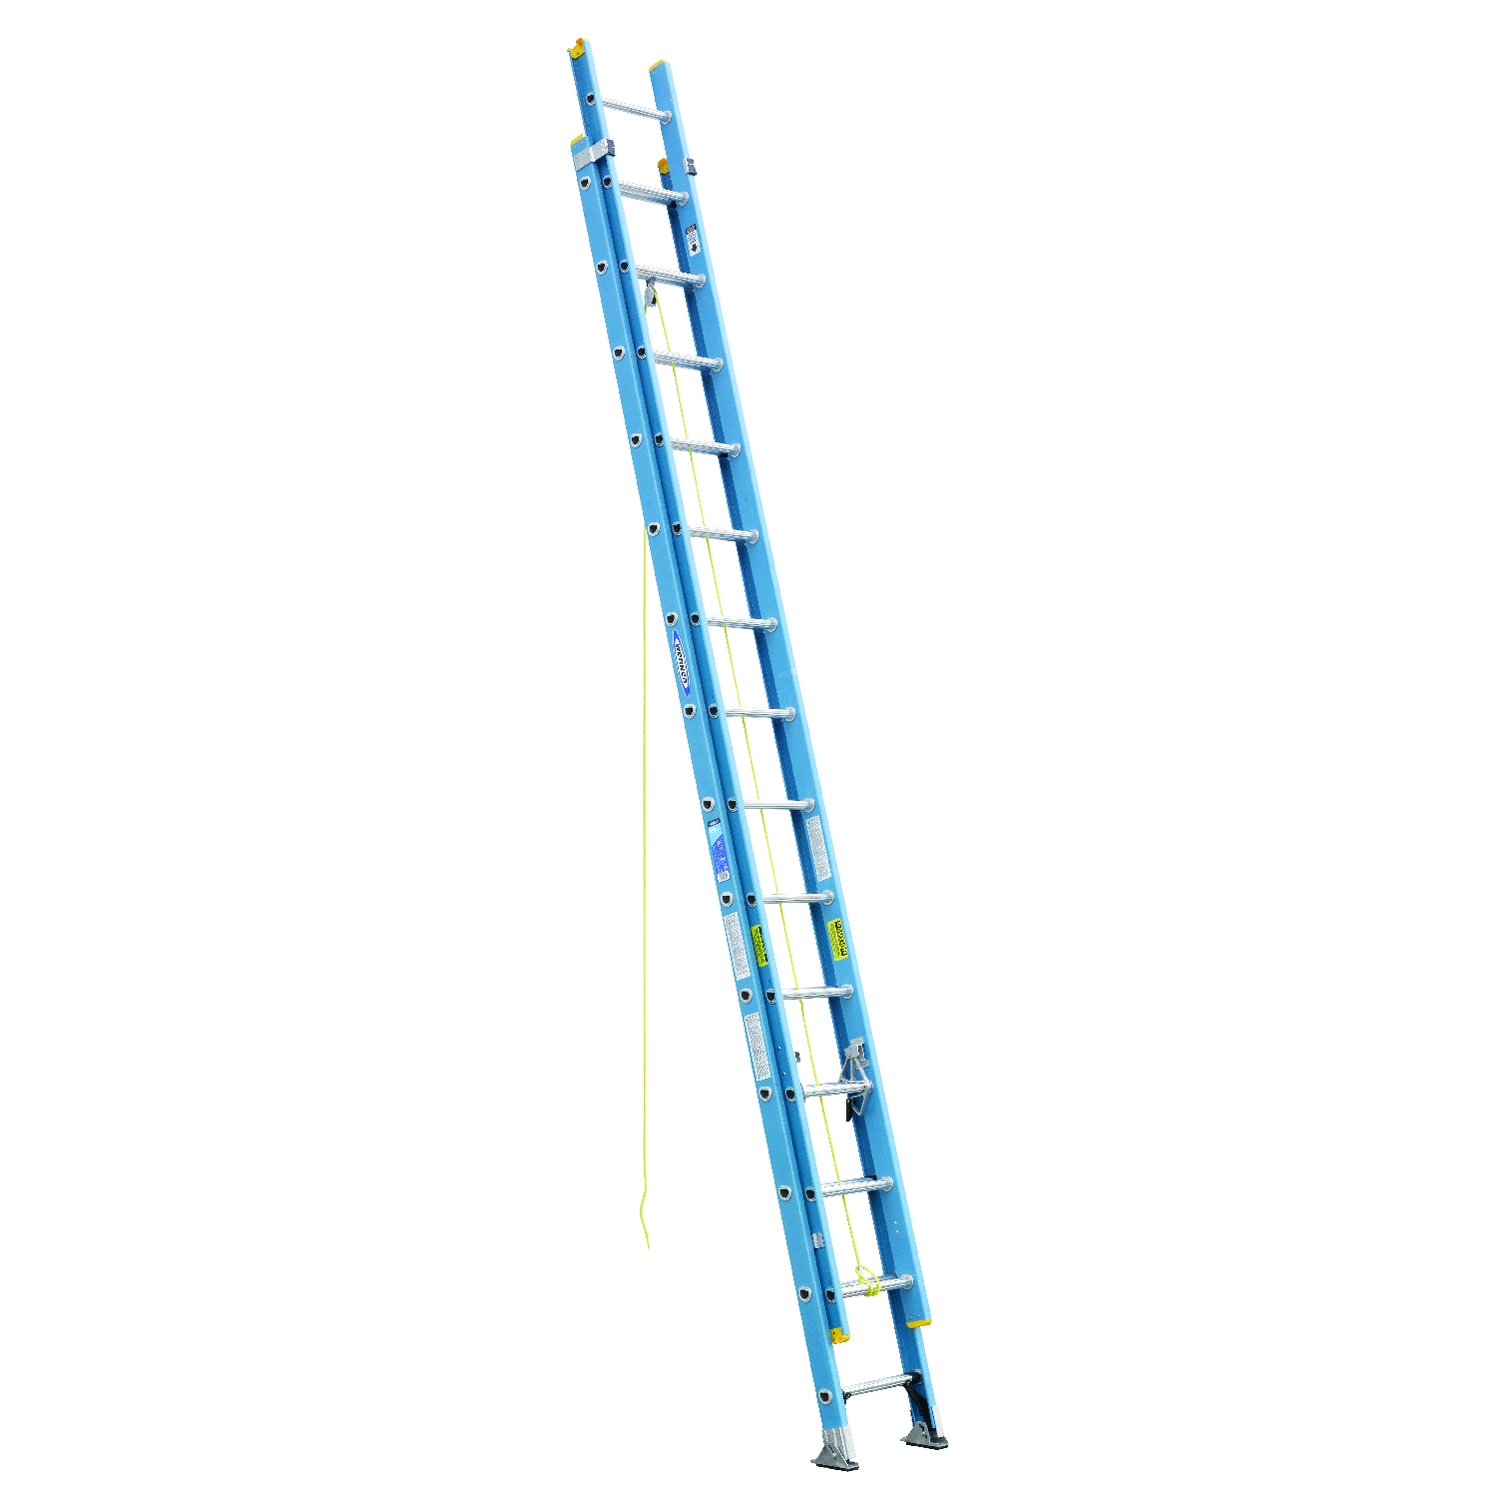 Werner  28 ft. H x 18.13 in. W Fiberglass  Type I  250 lb. Extension Ladder